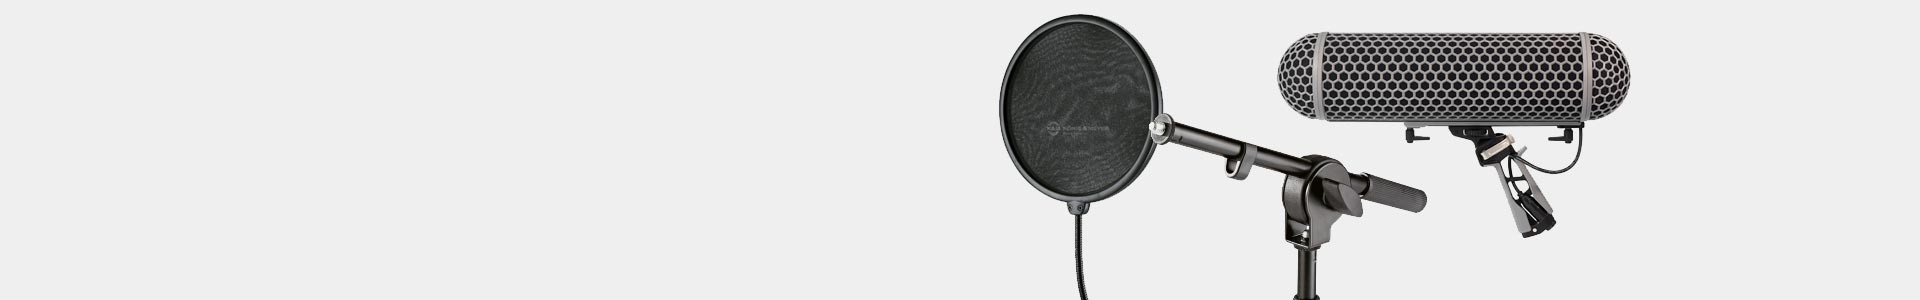 All kinds of accessories for professional microphones - Avacab